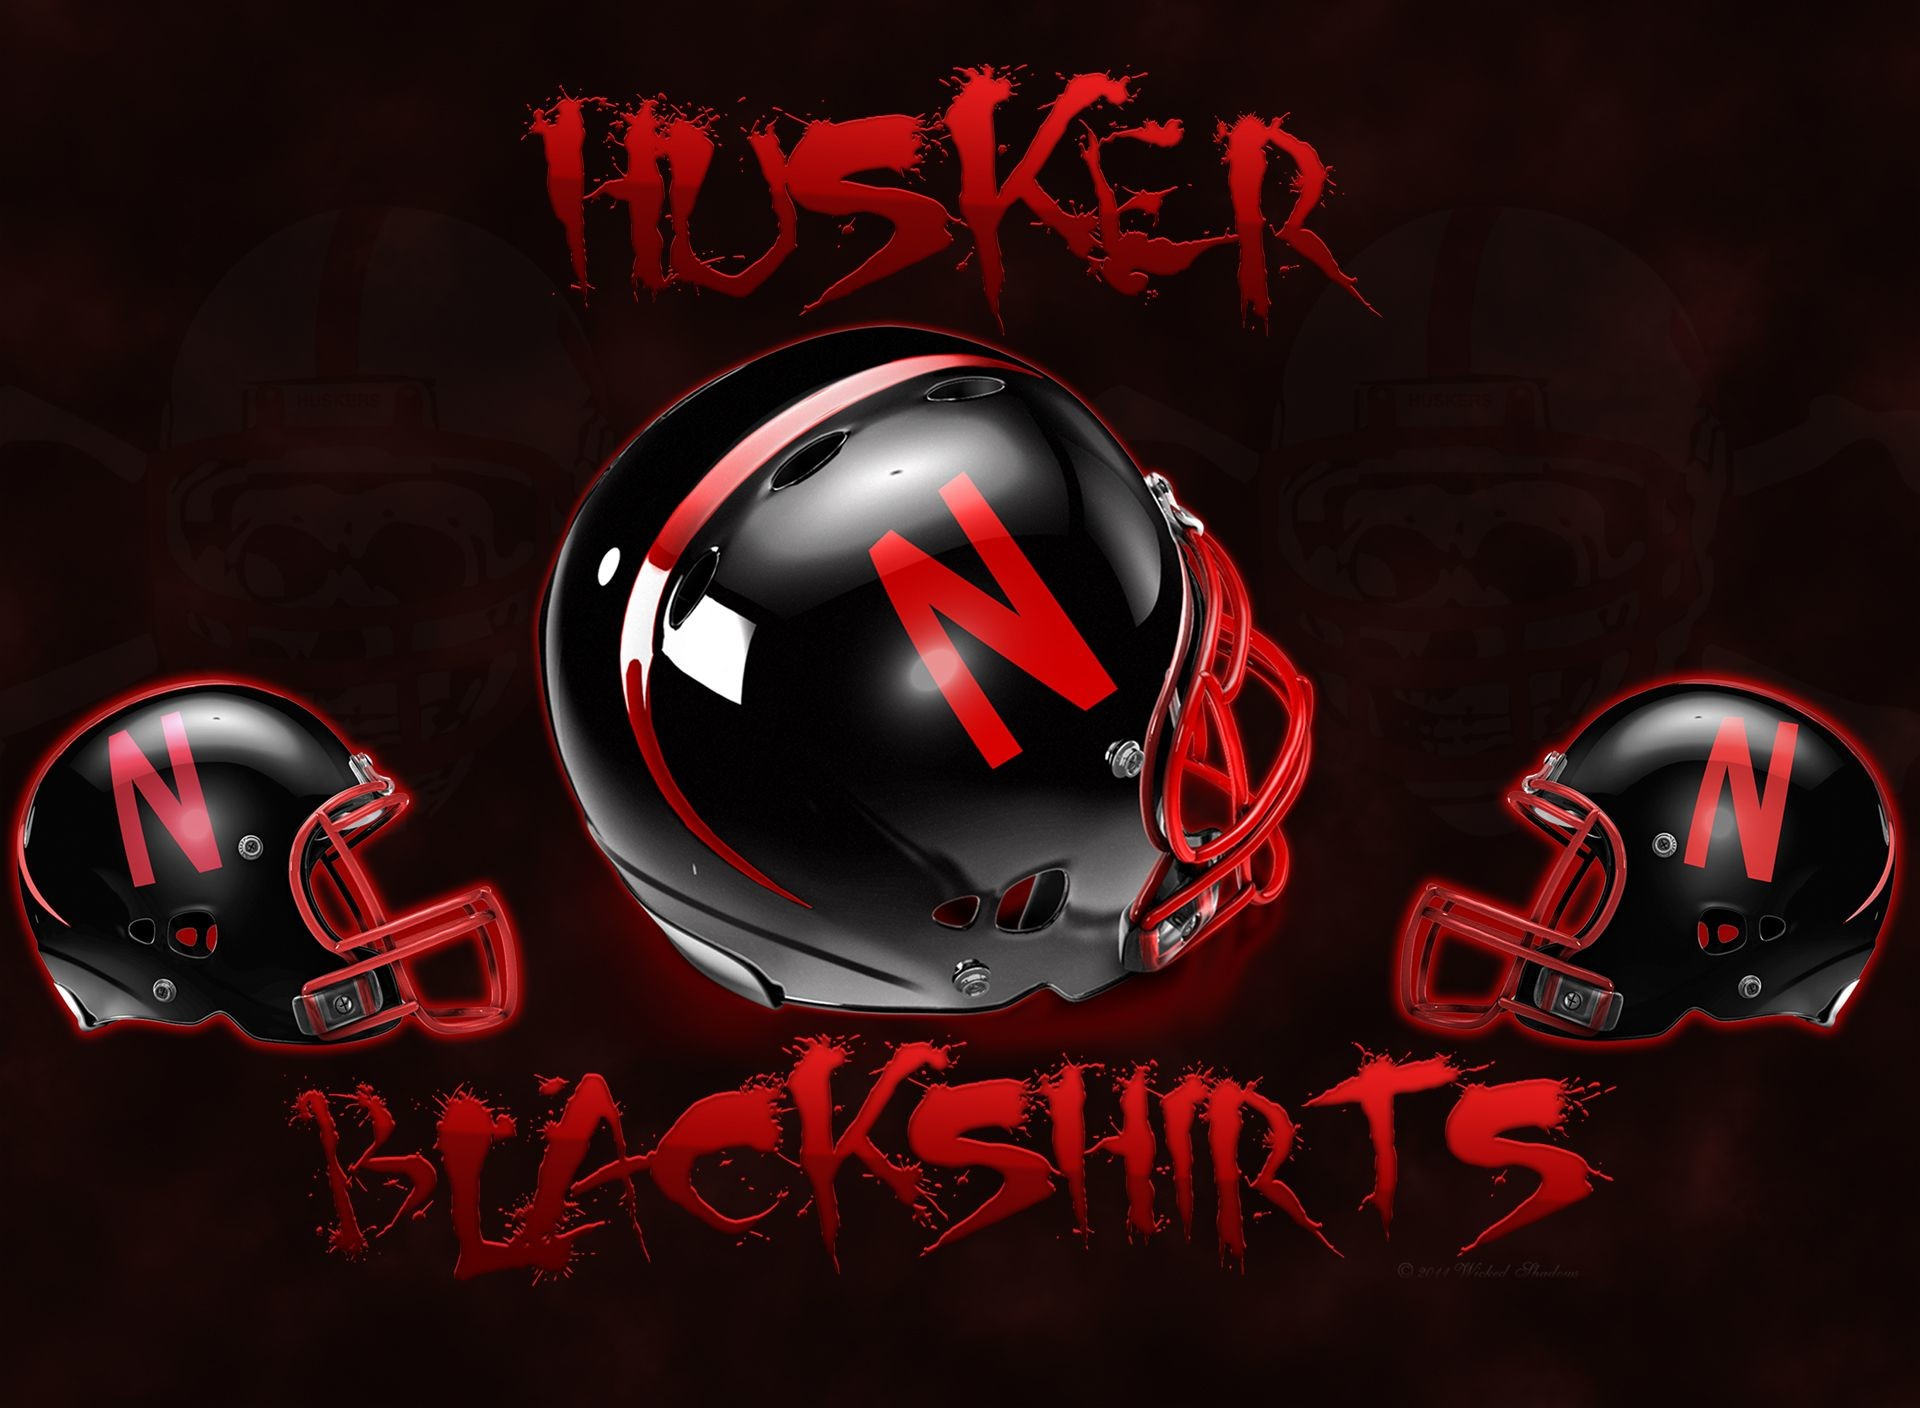 Wallpapers By Wicked Shadows: Husker Wallpapers